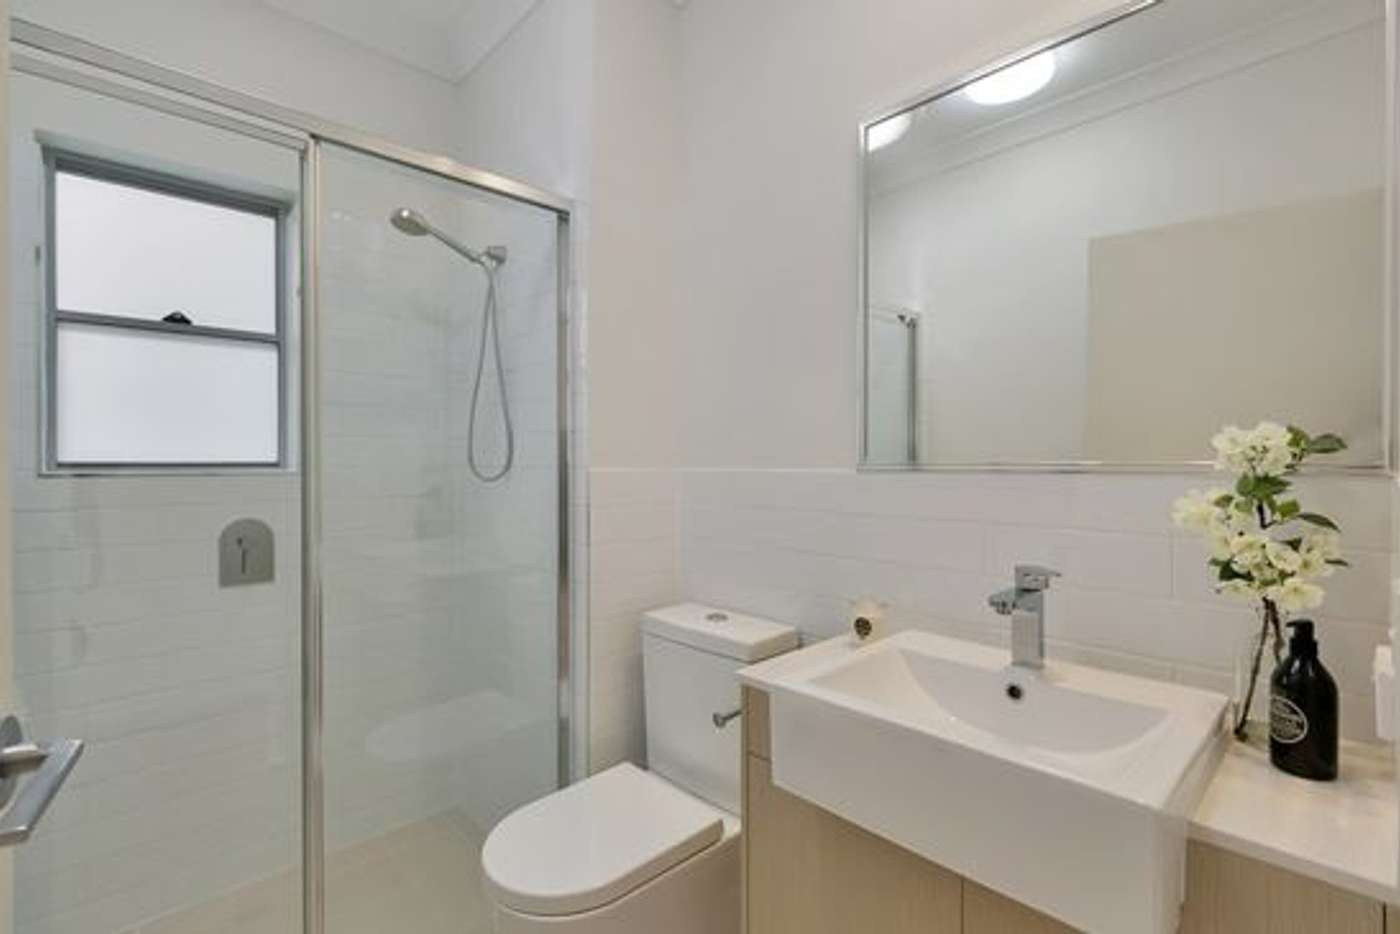 Main view of Homely unit listing, 4/96 DELL RD, St Lucia QLD 4067